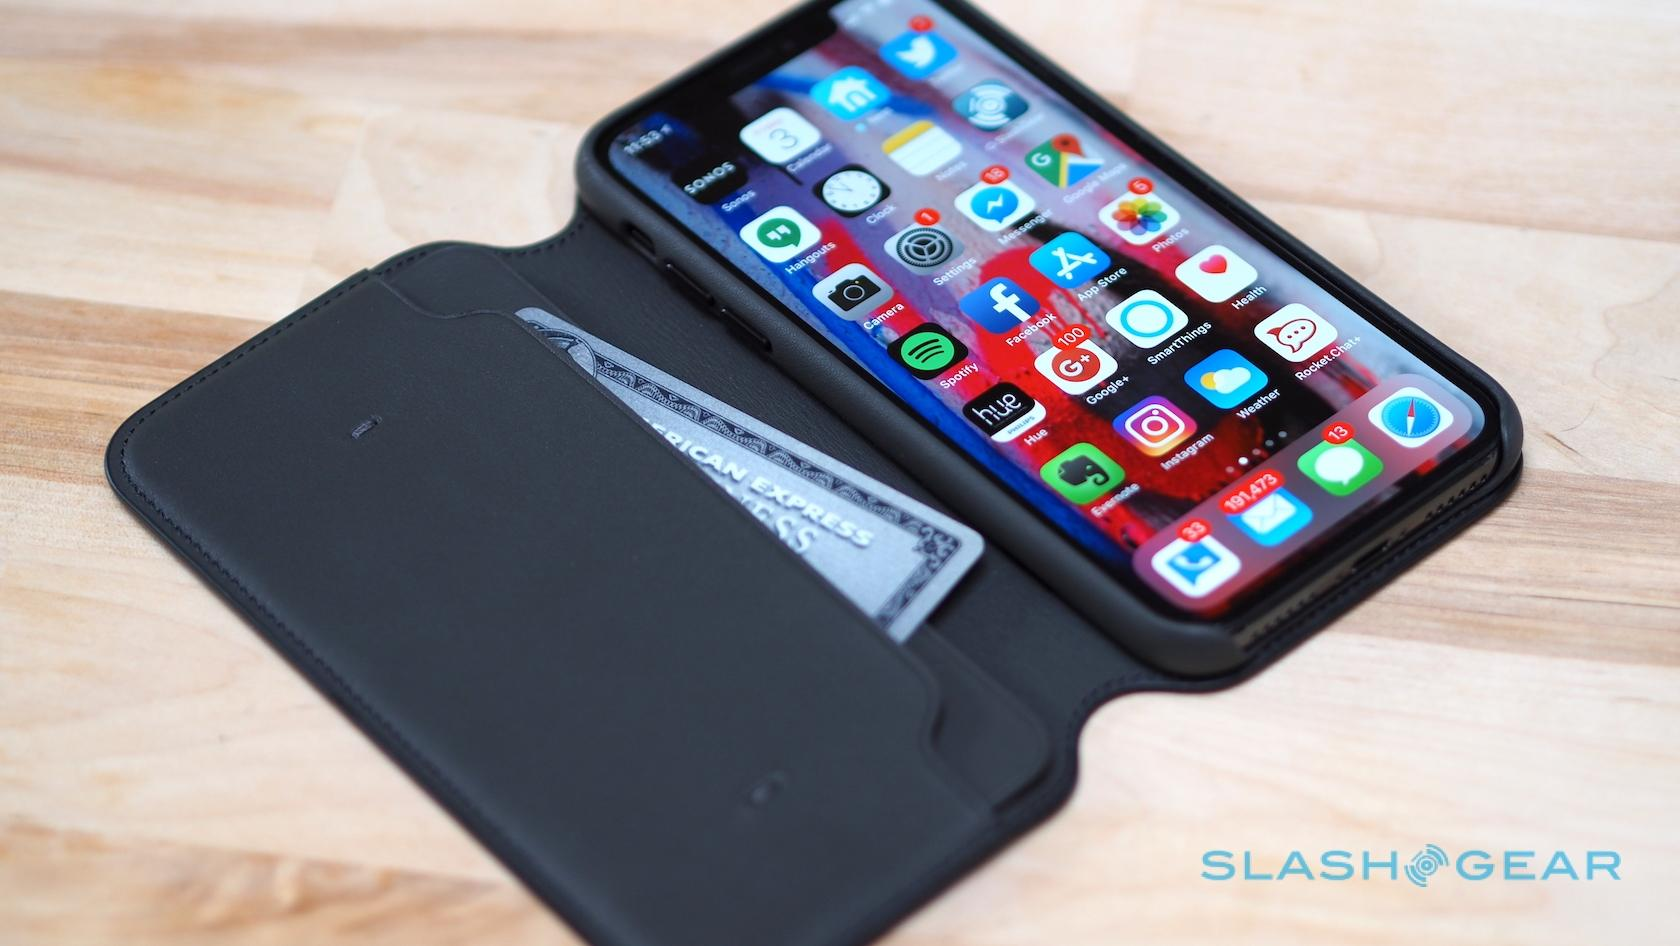 new product 7900f 88ccd Apple's iPhone X Leather Folio case is really slick - SlashGear